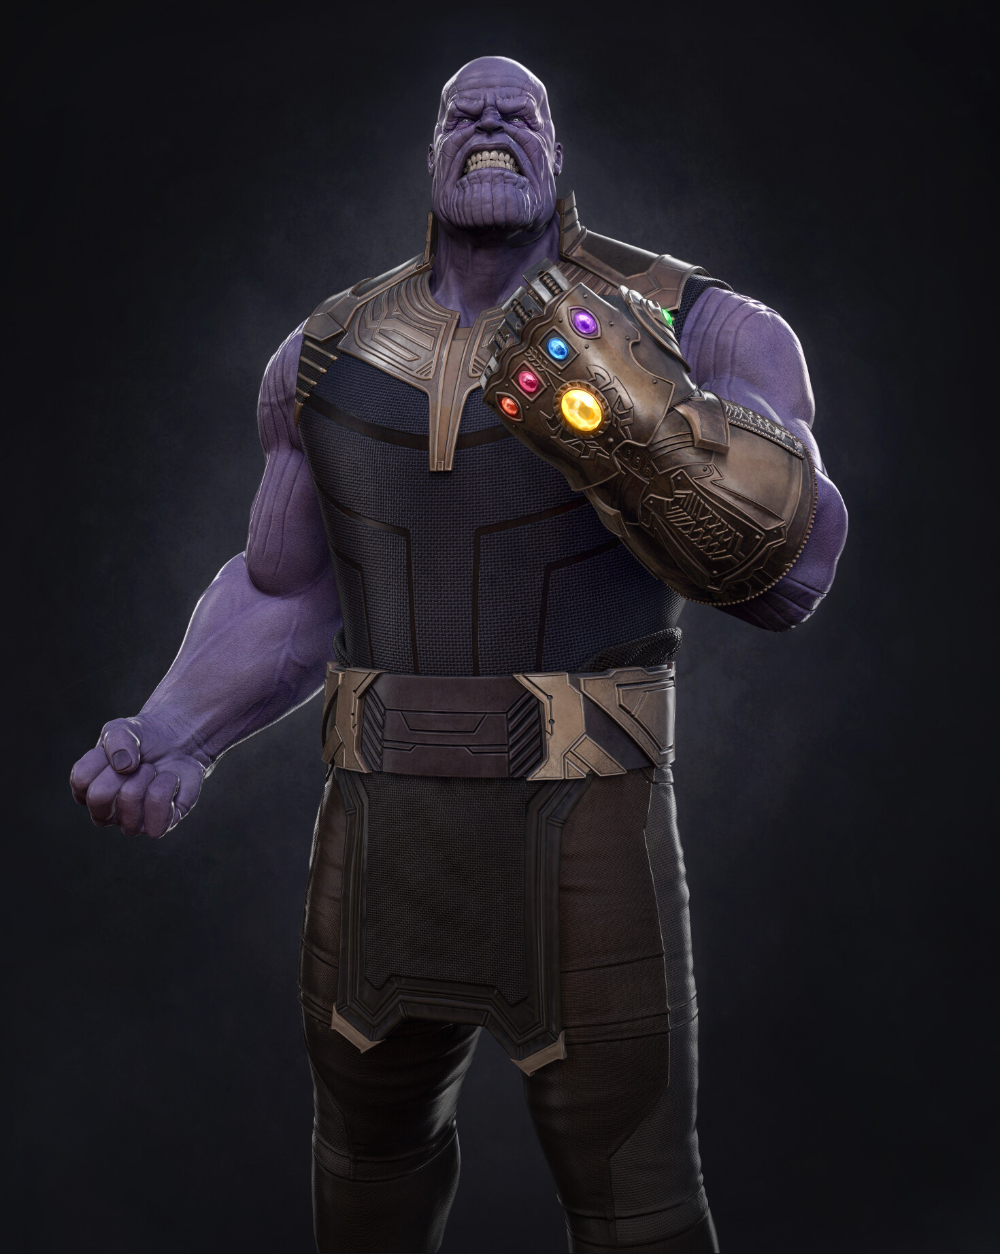 Artstation Thanos And The Infinity Gauntlet Morten Jaeger The Infinity Gauntlet Zbrush Sculpting